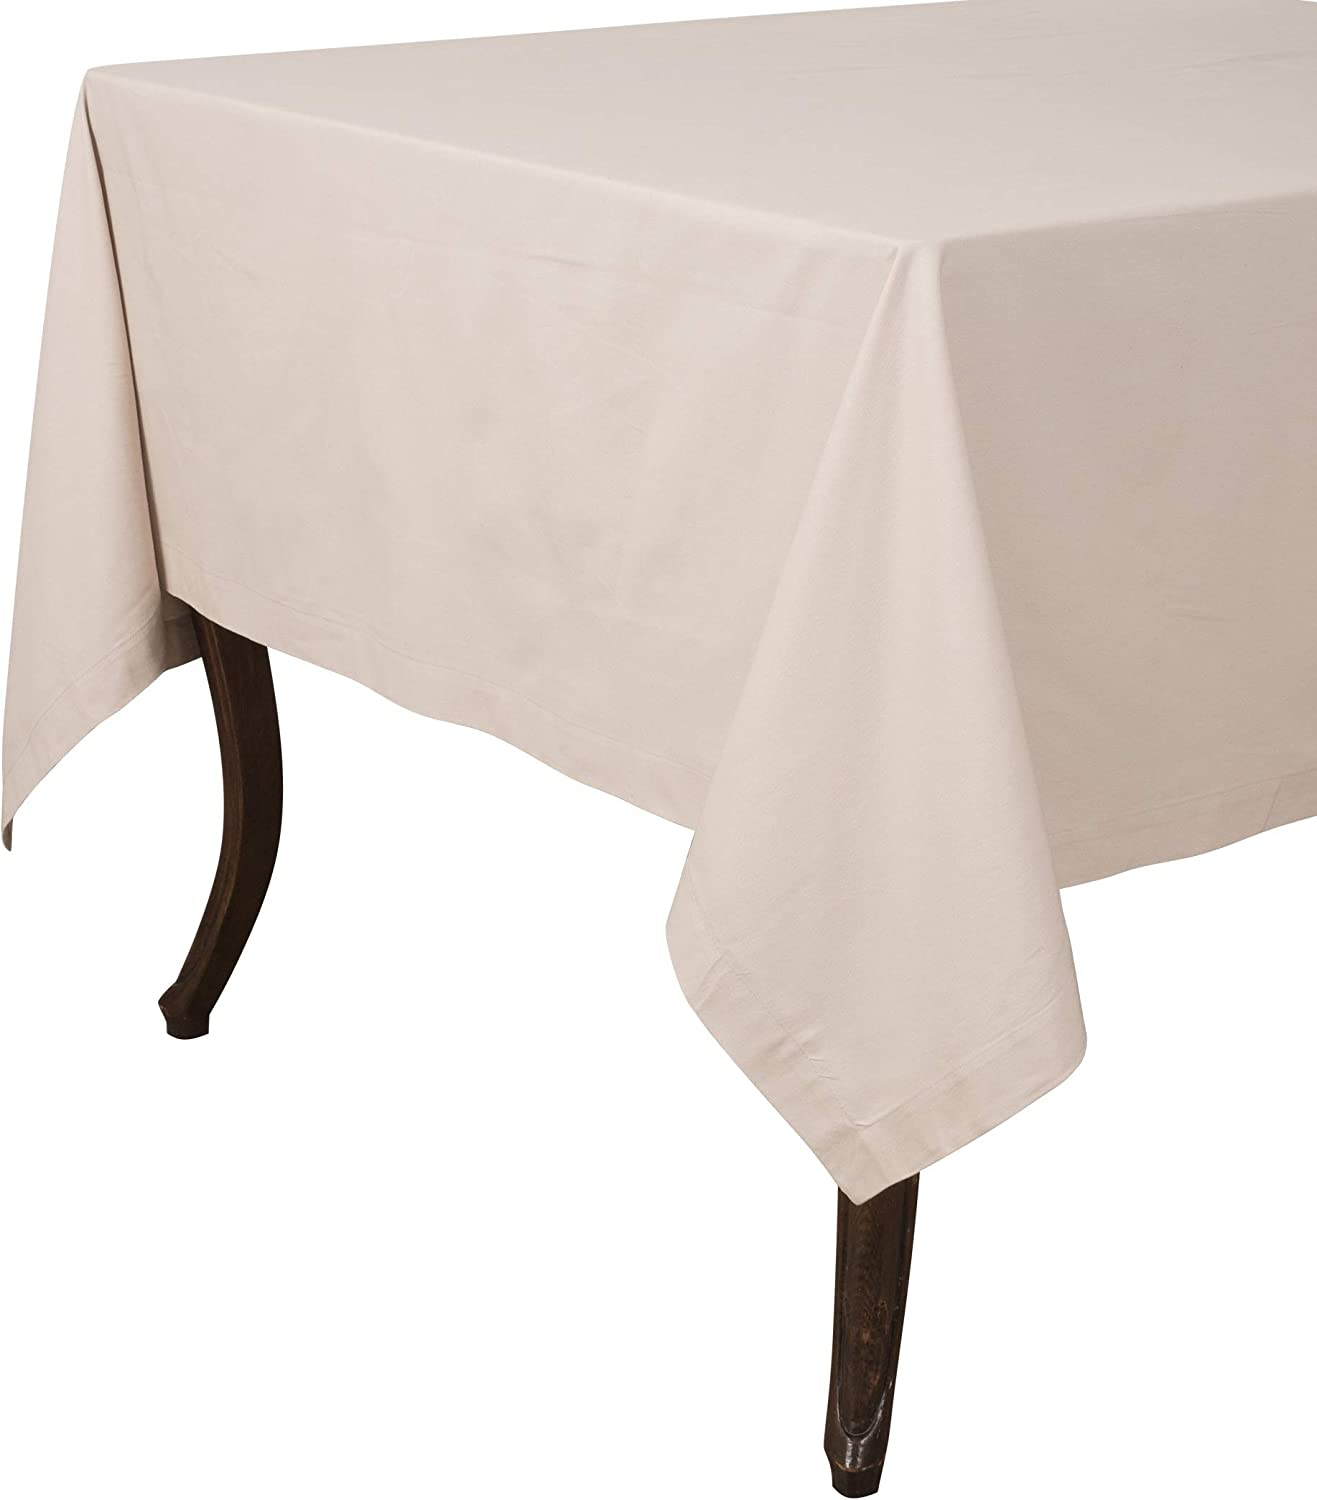 "KAF Home Buffet Tablecloth in Flax, 70"" by 70"", 100% Cotton, Machine Washable"